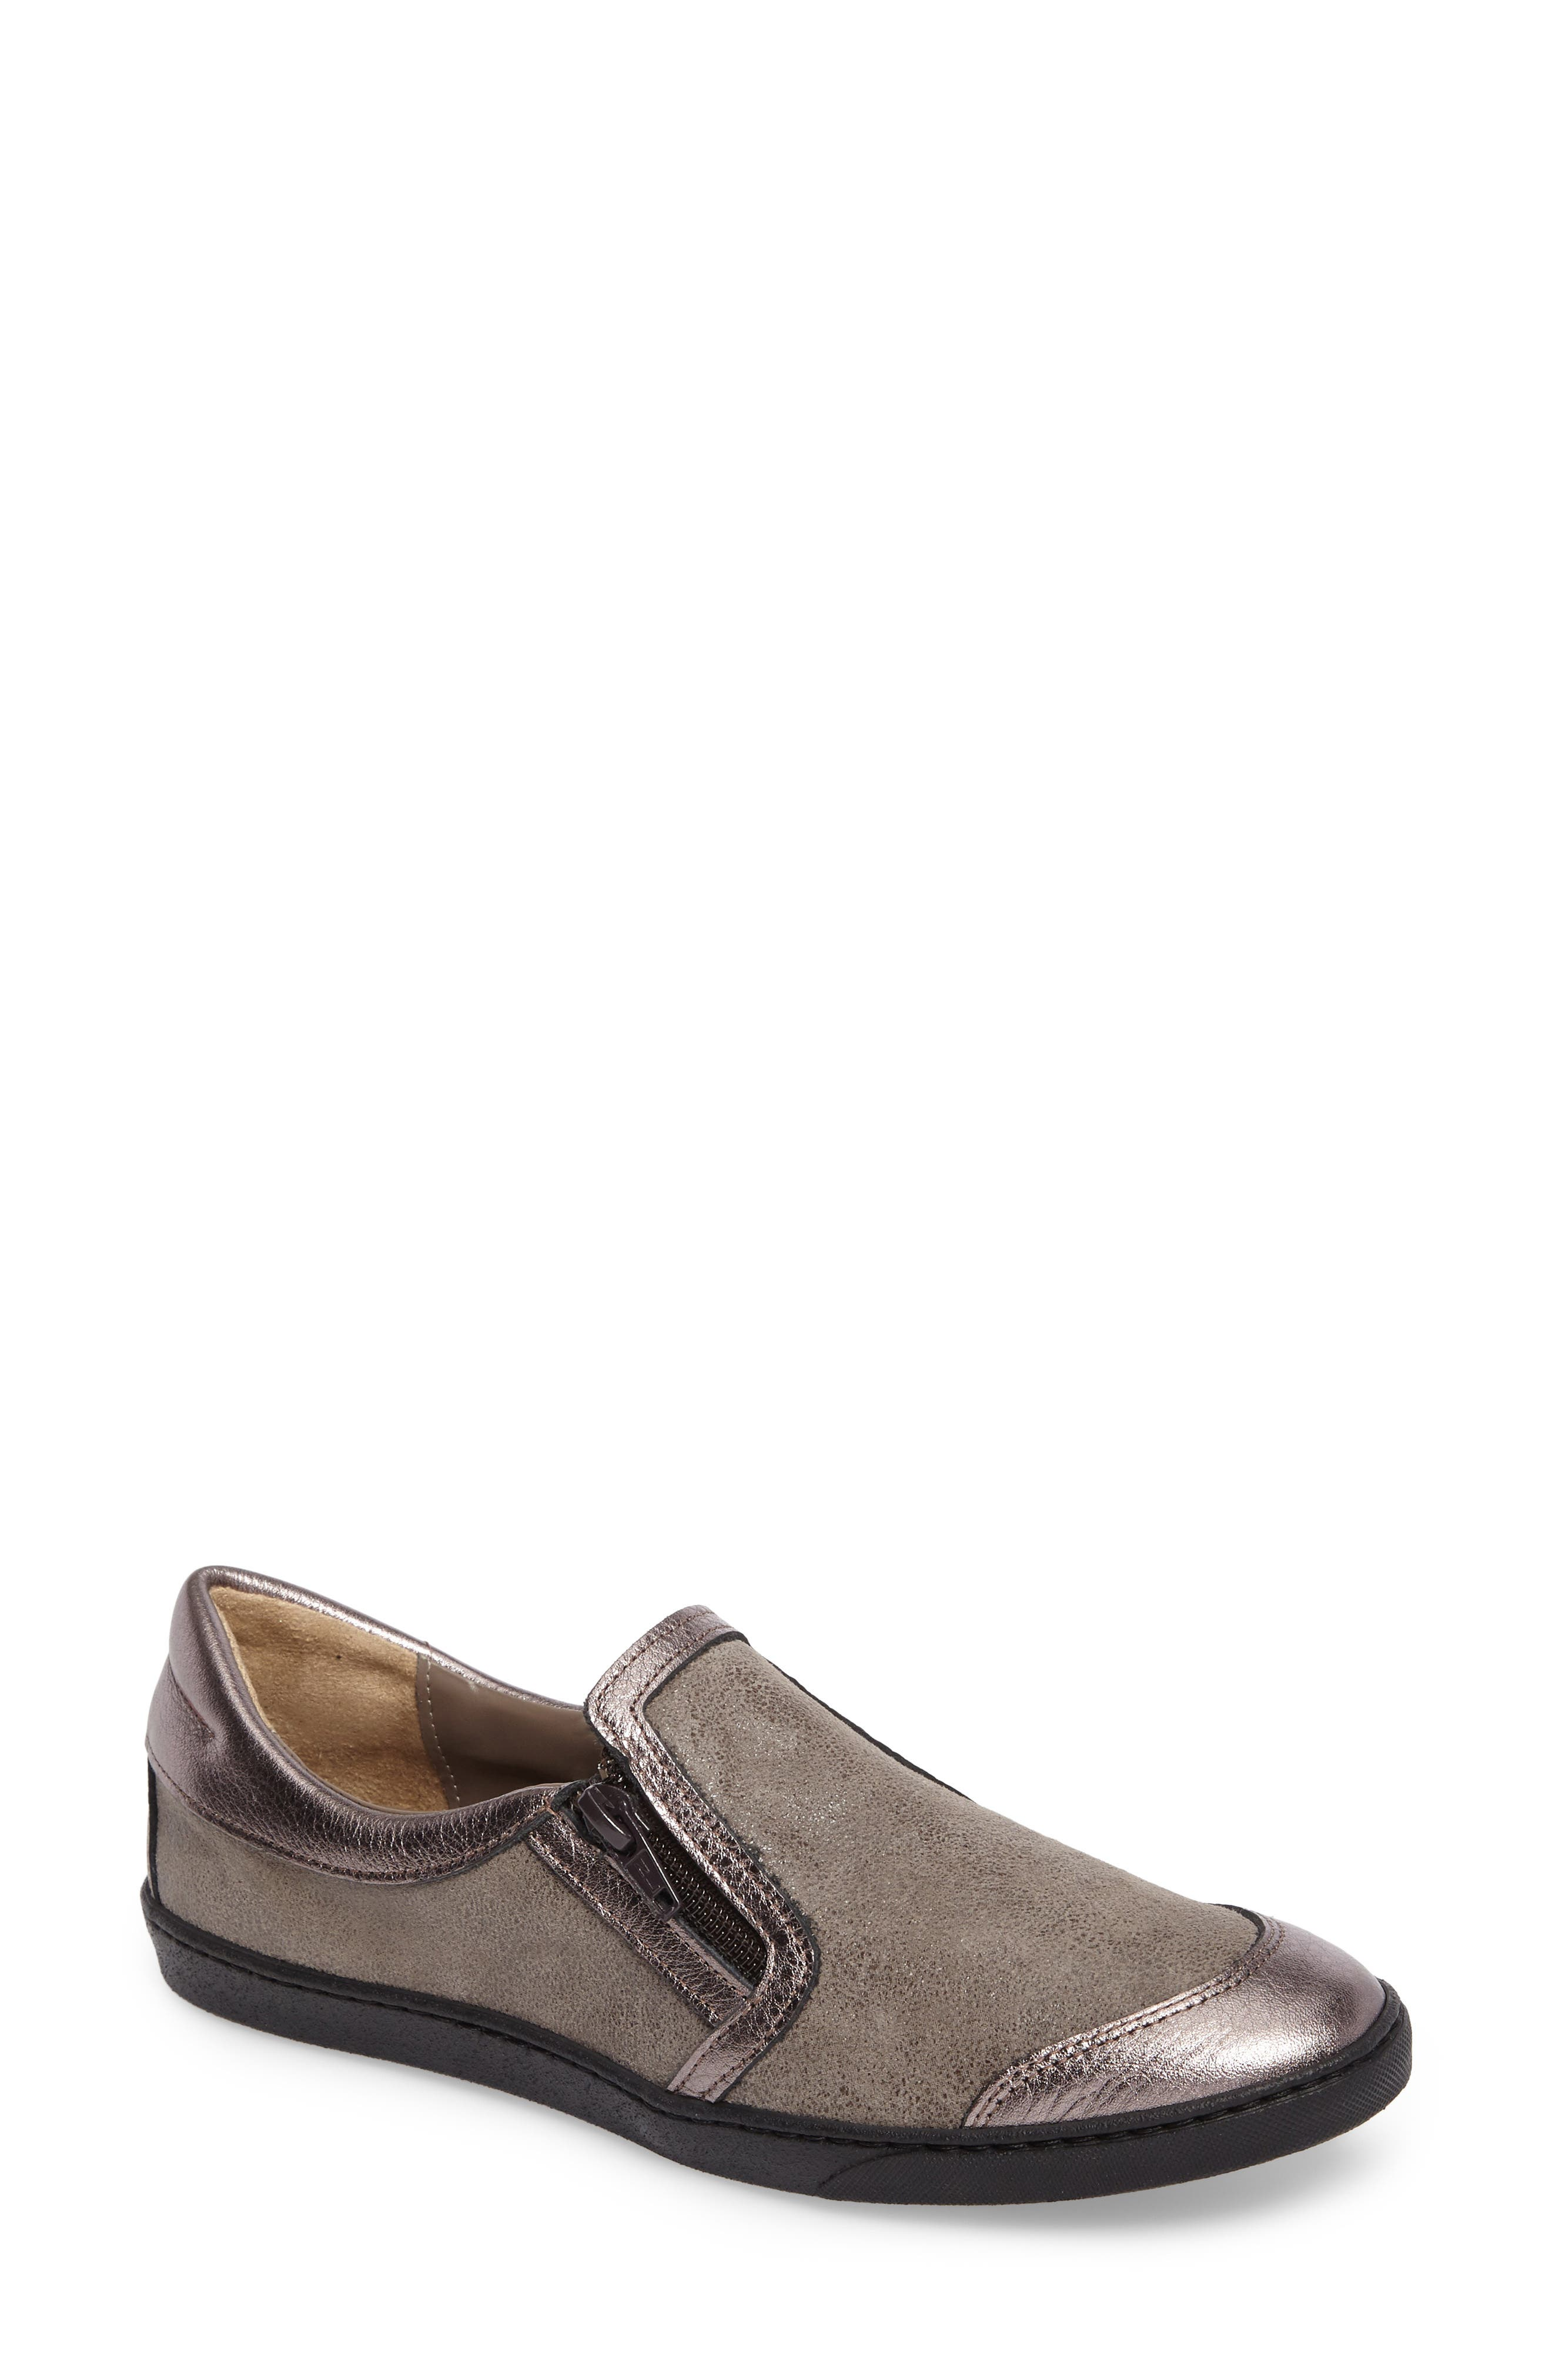 Fiorin Slip-On Sneaker,                             Main thumbnail 1, color,                             Taupe Fabric